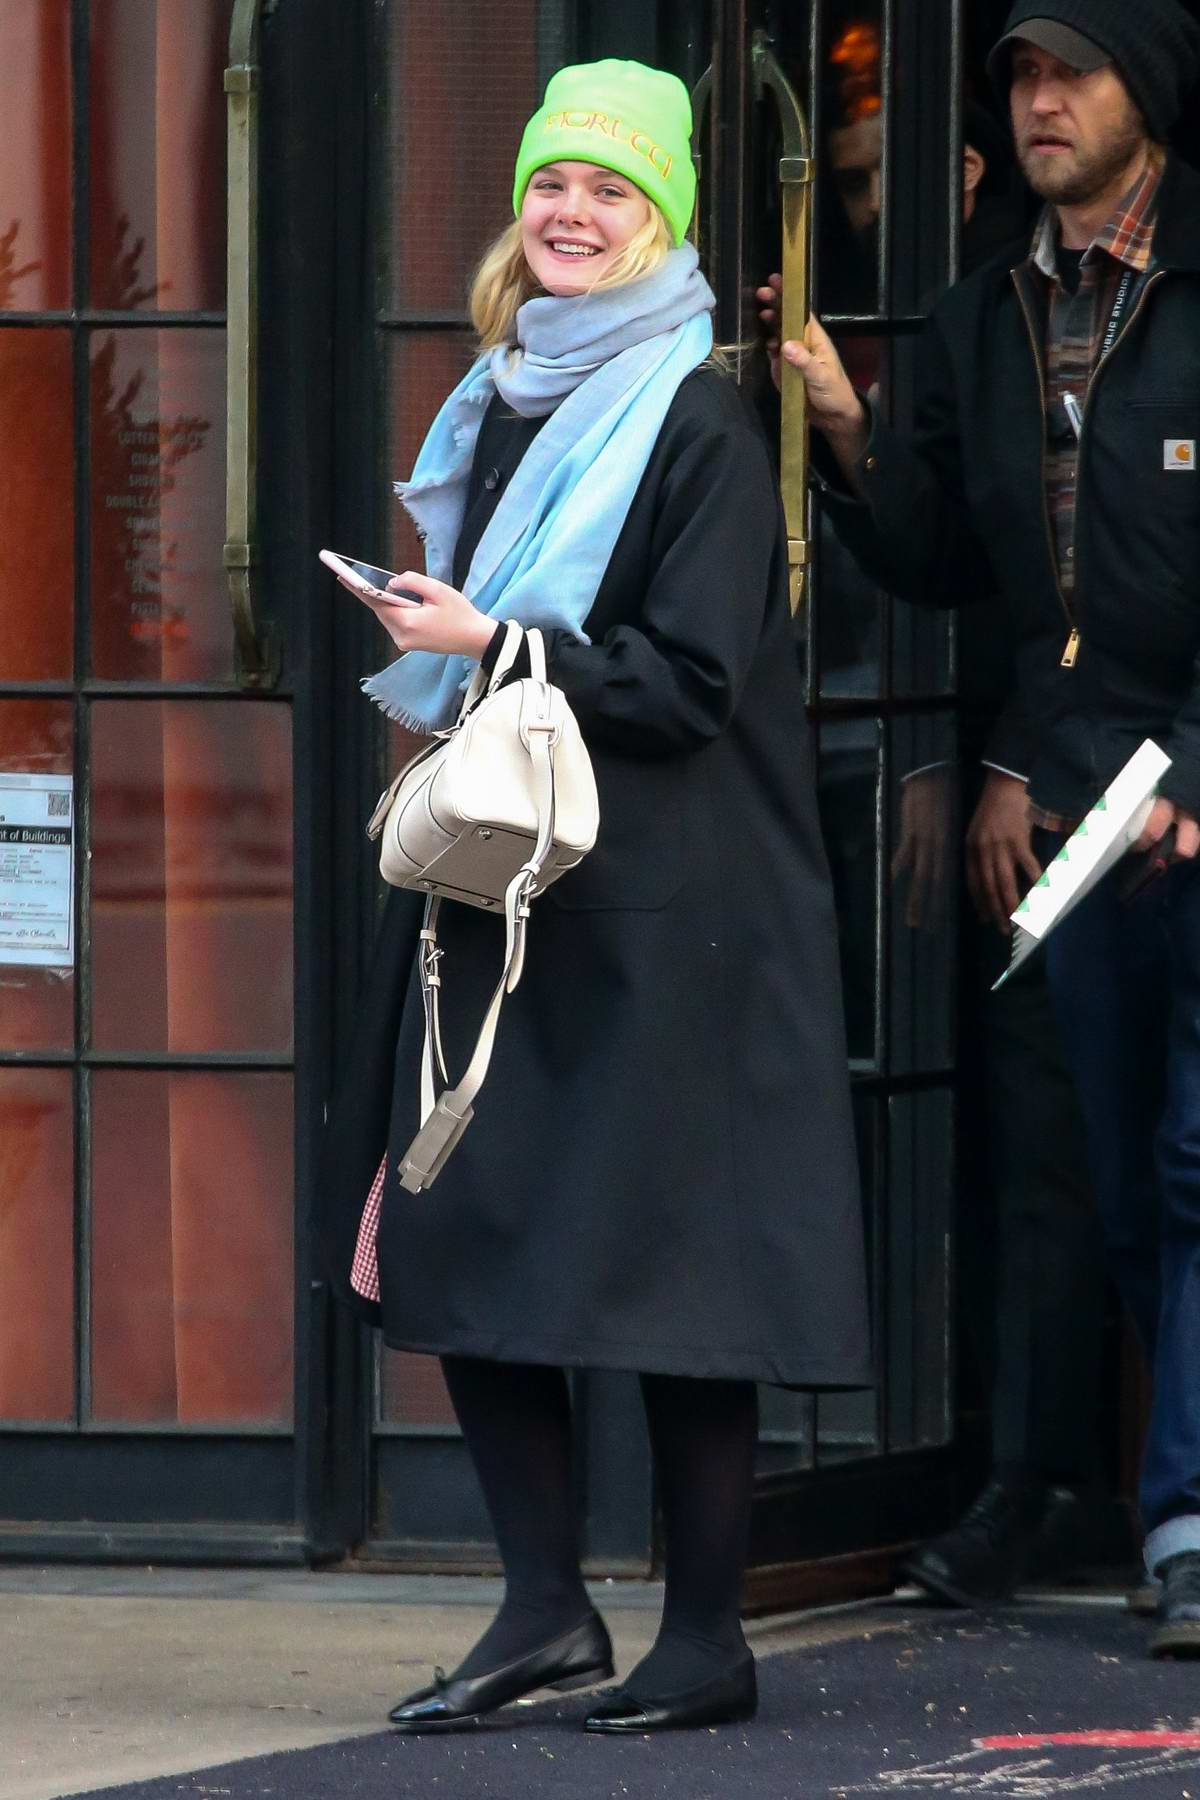 Elle Fanning is all smiles as she leaves The Bowery Hotel wearing a bright green beanie in New York City